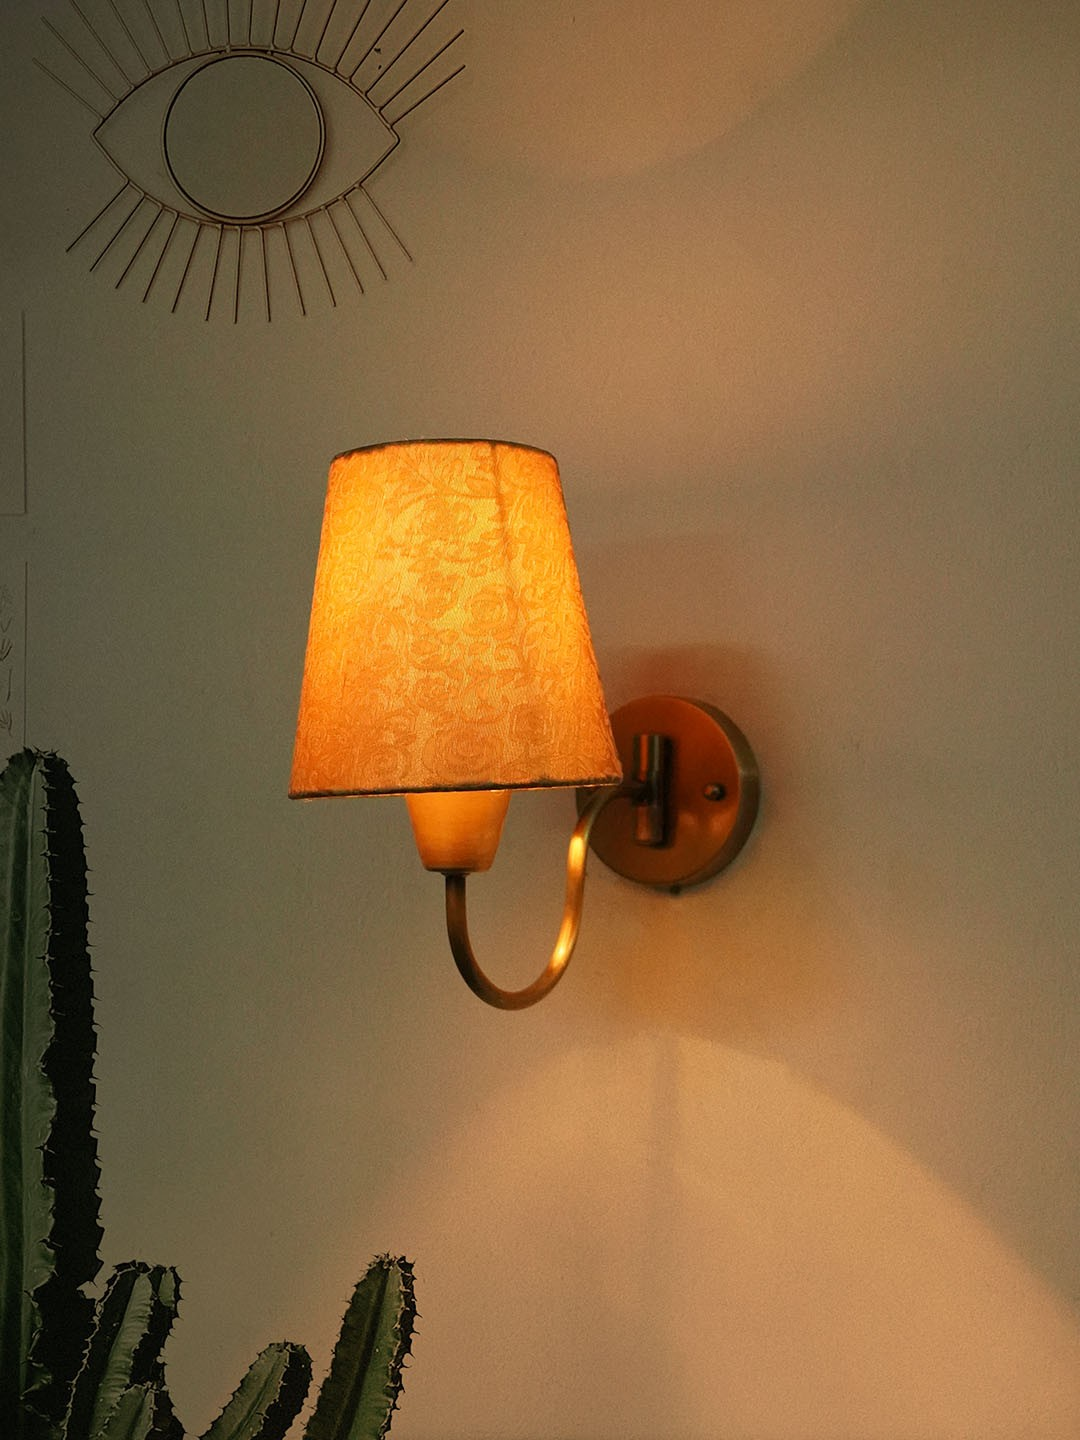 Gooseneck Brass Swivel Wall Sconce with Golden Brocade Fabric Shade